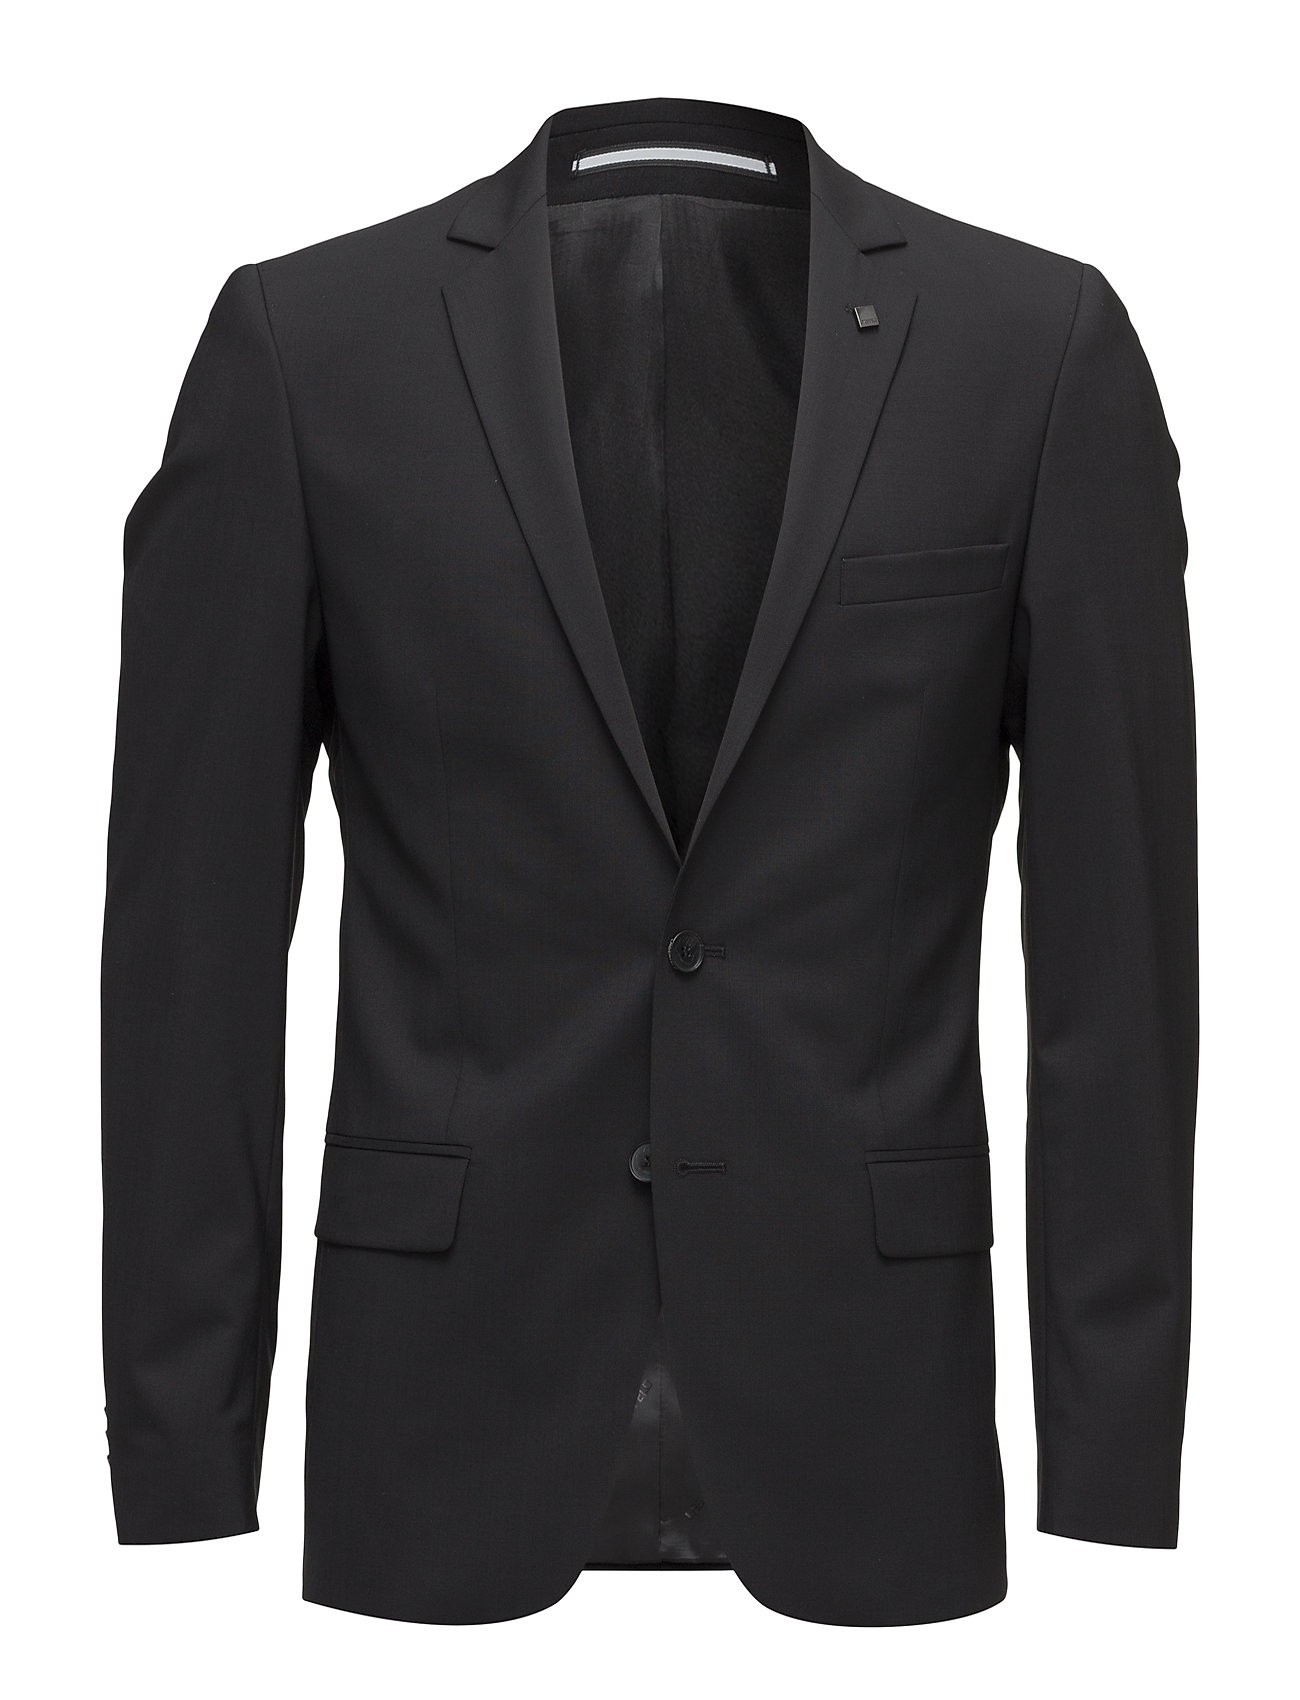 Lagerfeld JACKET CLEVER - 990-BLACK